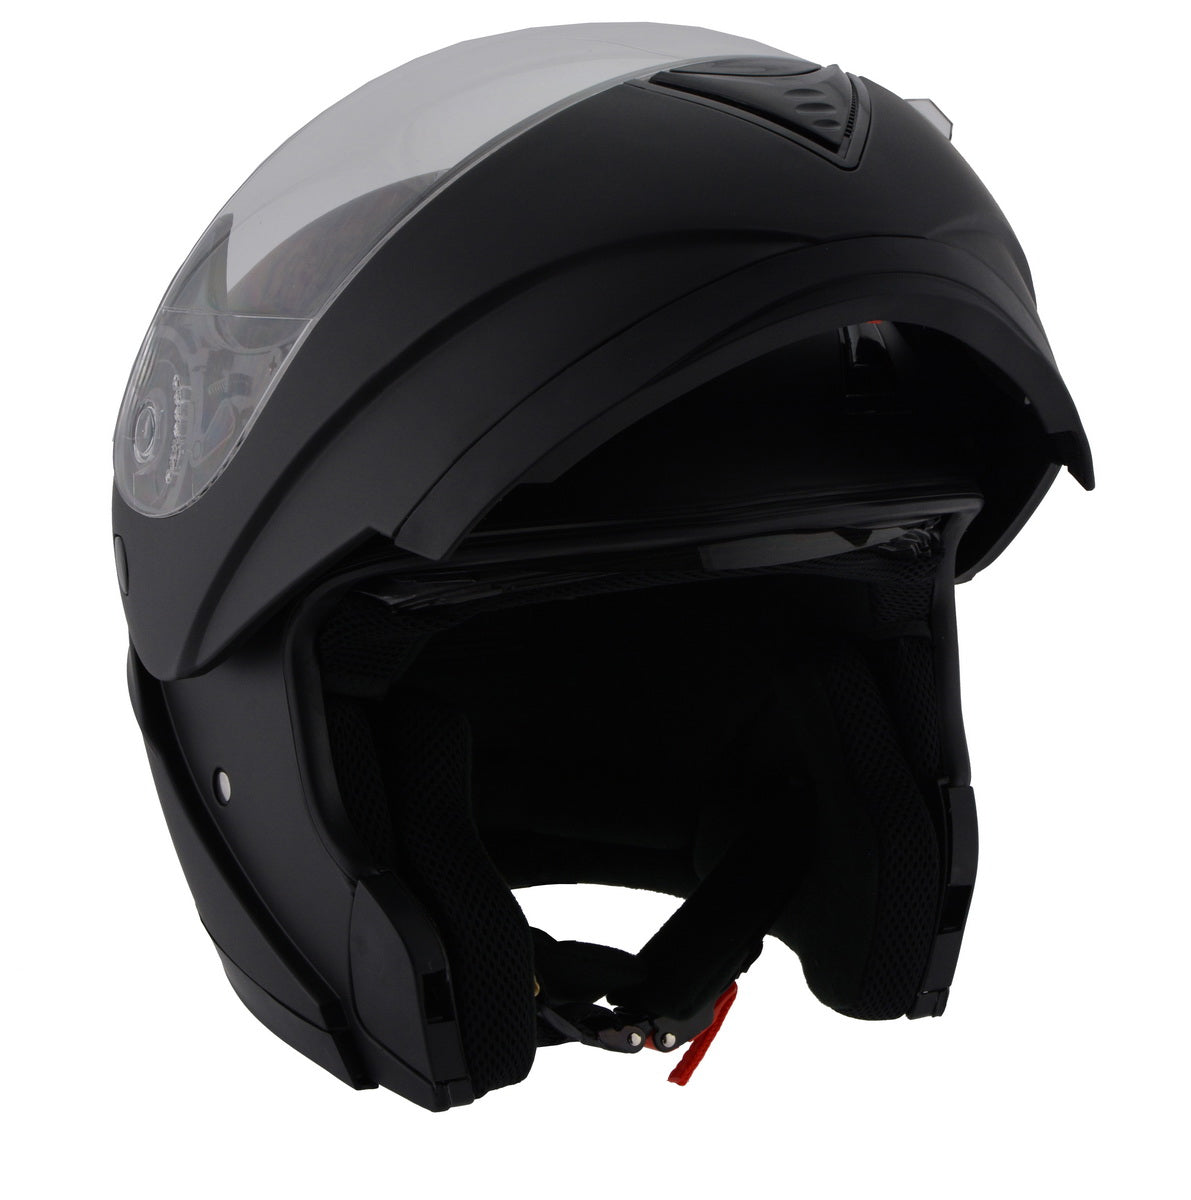 Milwaukee Performance Helmet MPH9801DOT 'Expedition' Modular Matte